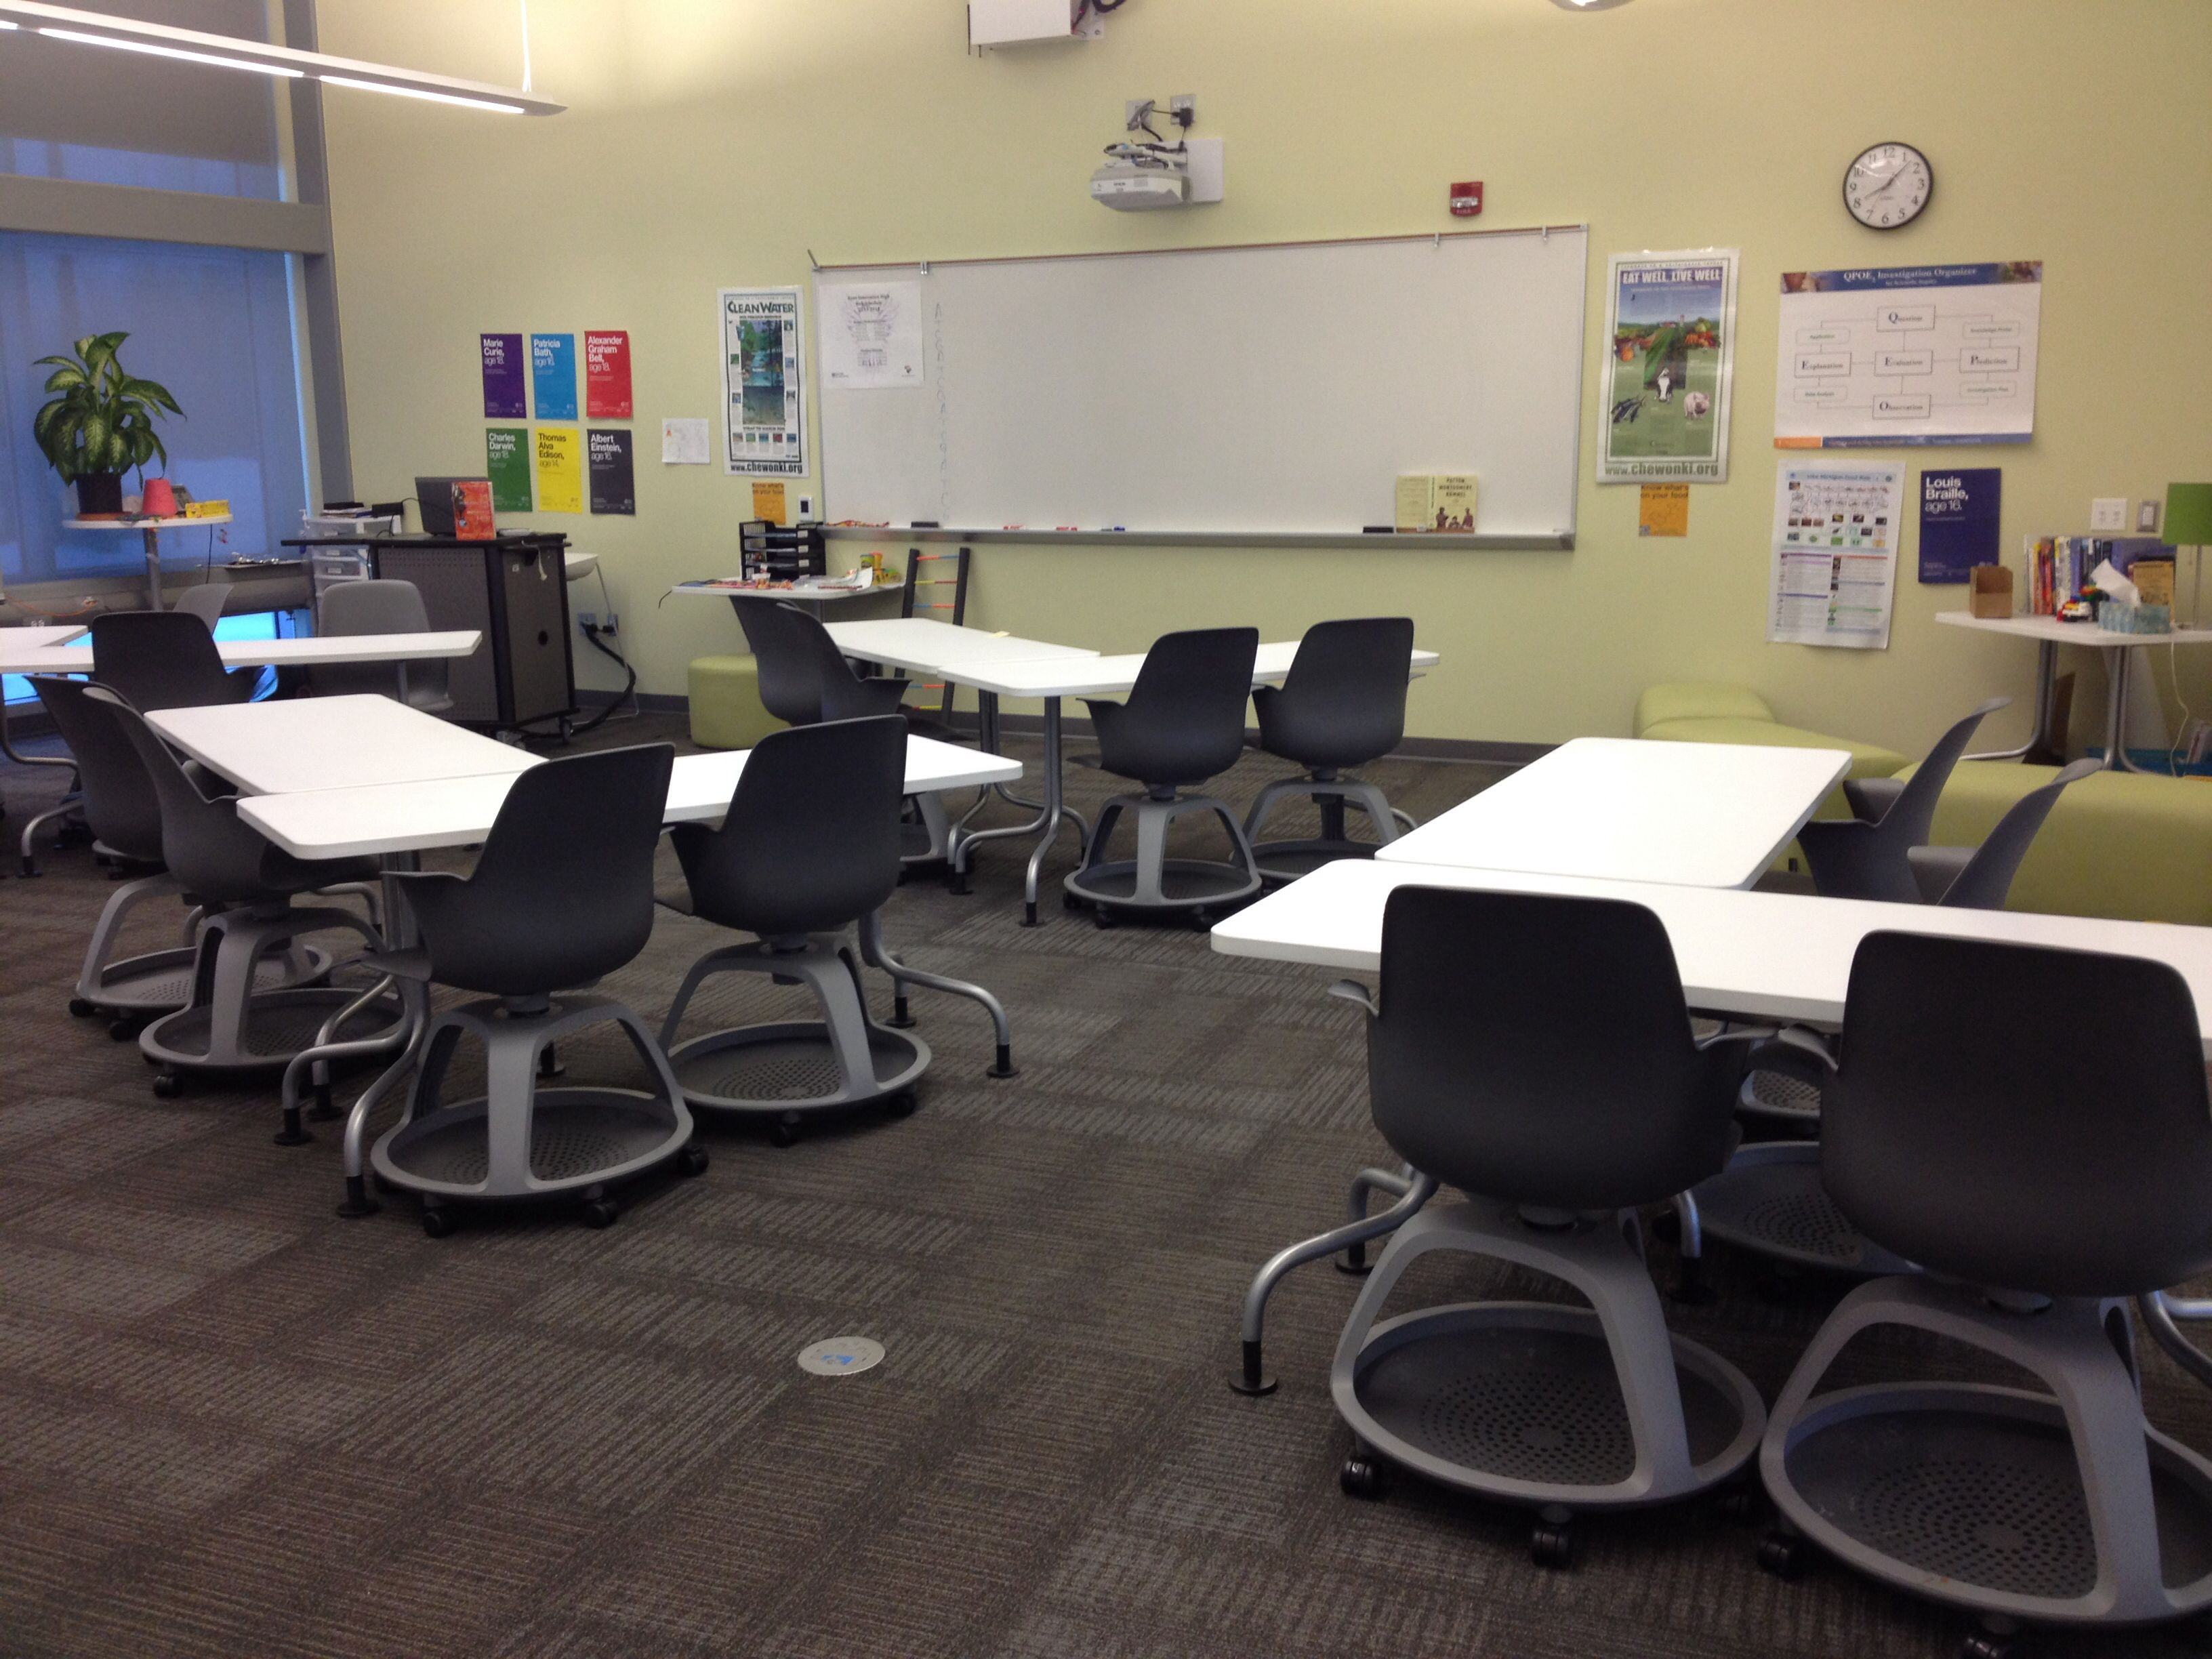 Classroom Design Ideas For High School : Kent innovation high school classroom seating